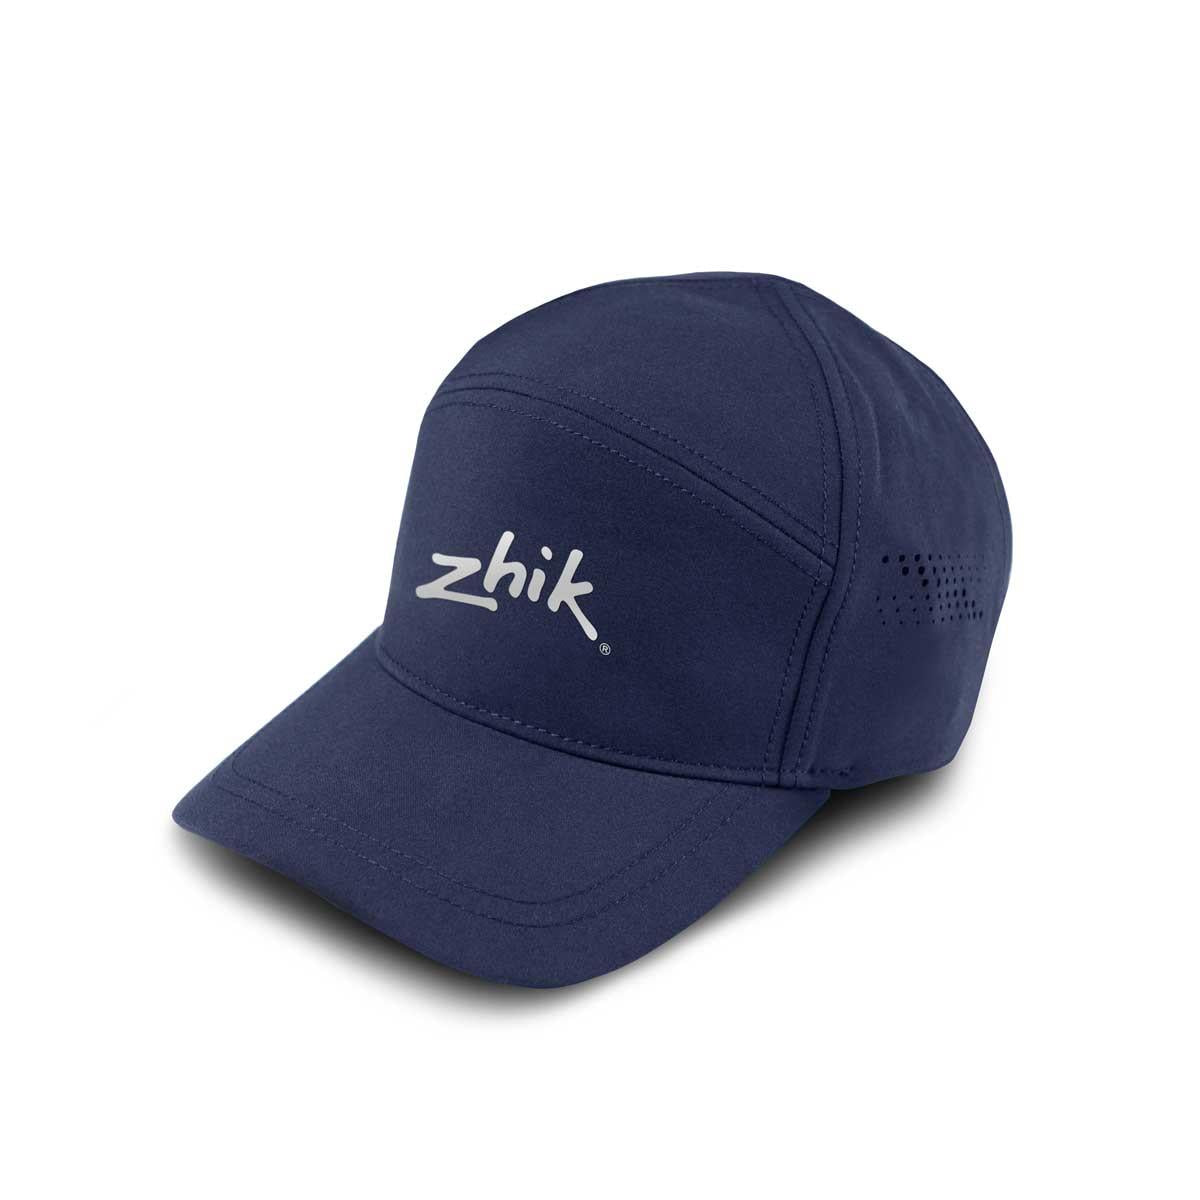 Zhik Sports Sailing Cap - Navy Blue